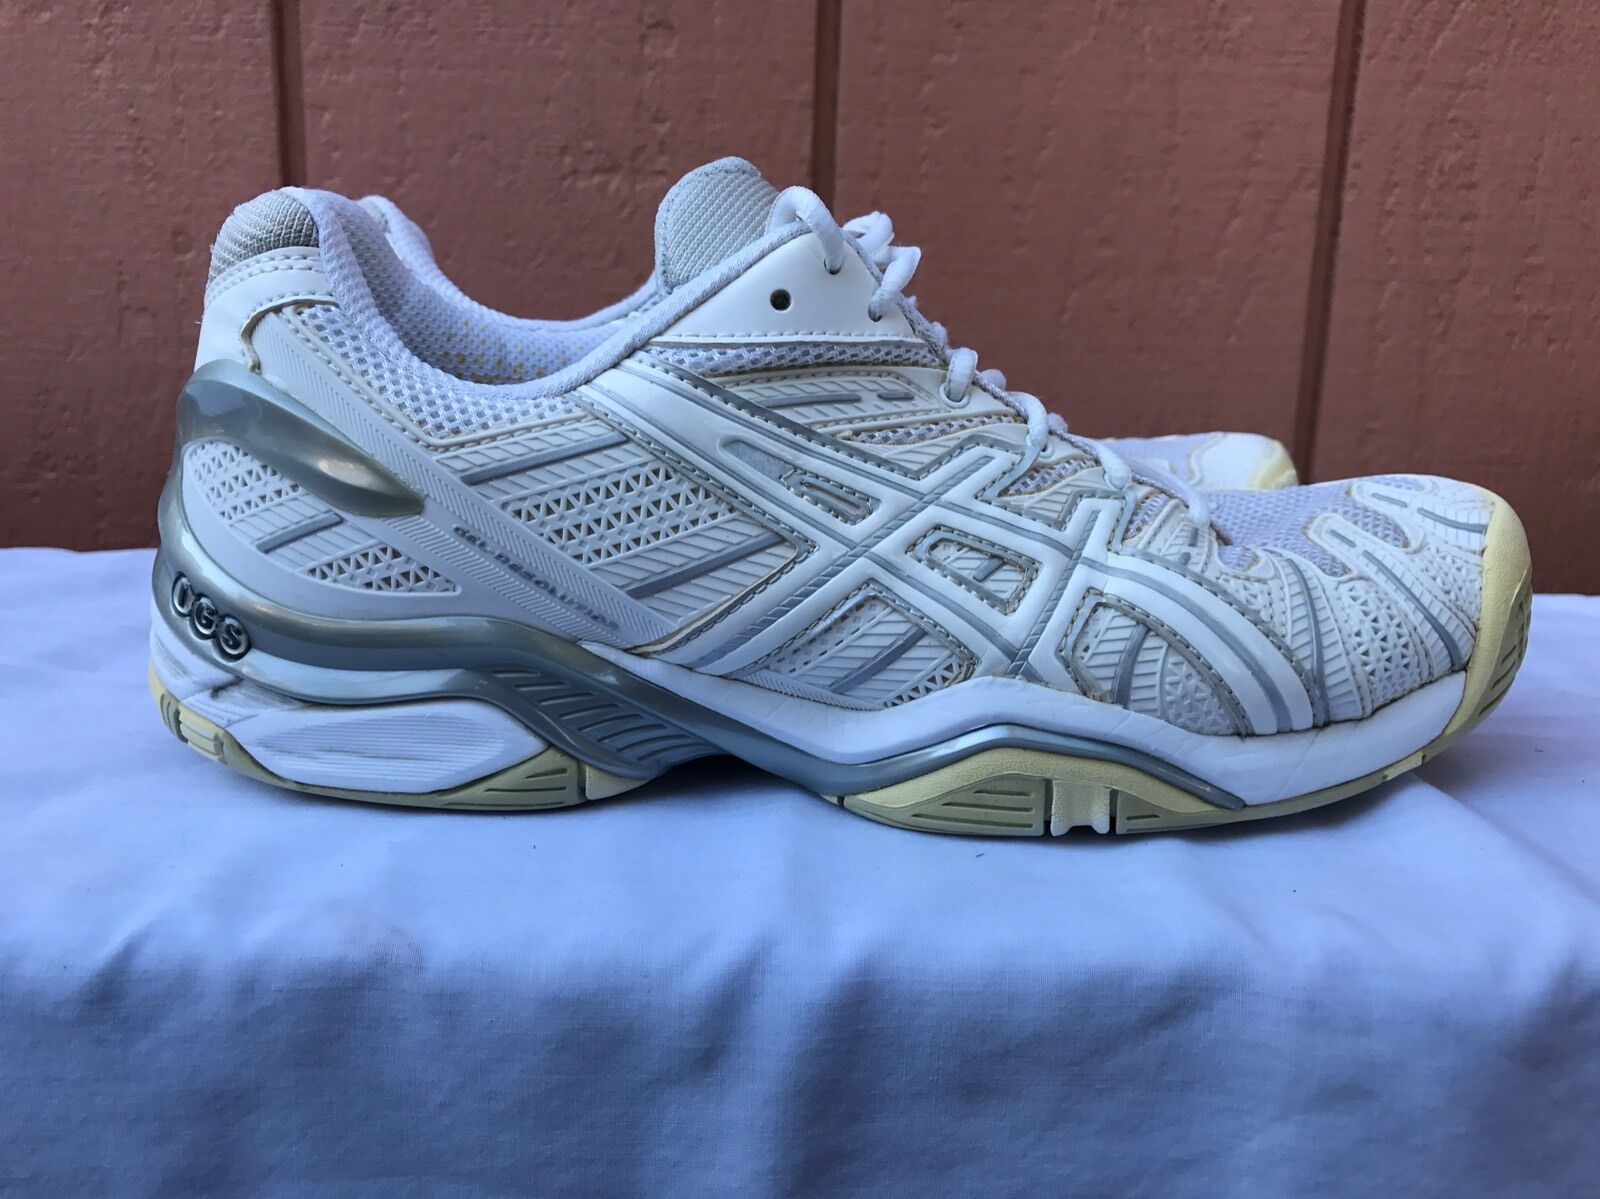 EUC Asics Gel Resolution Running Shoes Women's US 9 White Tennis Shoes Casual wild